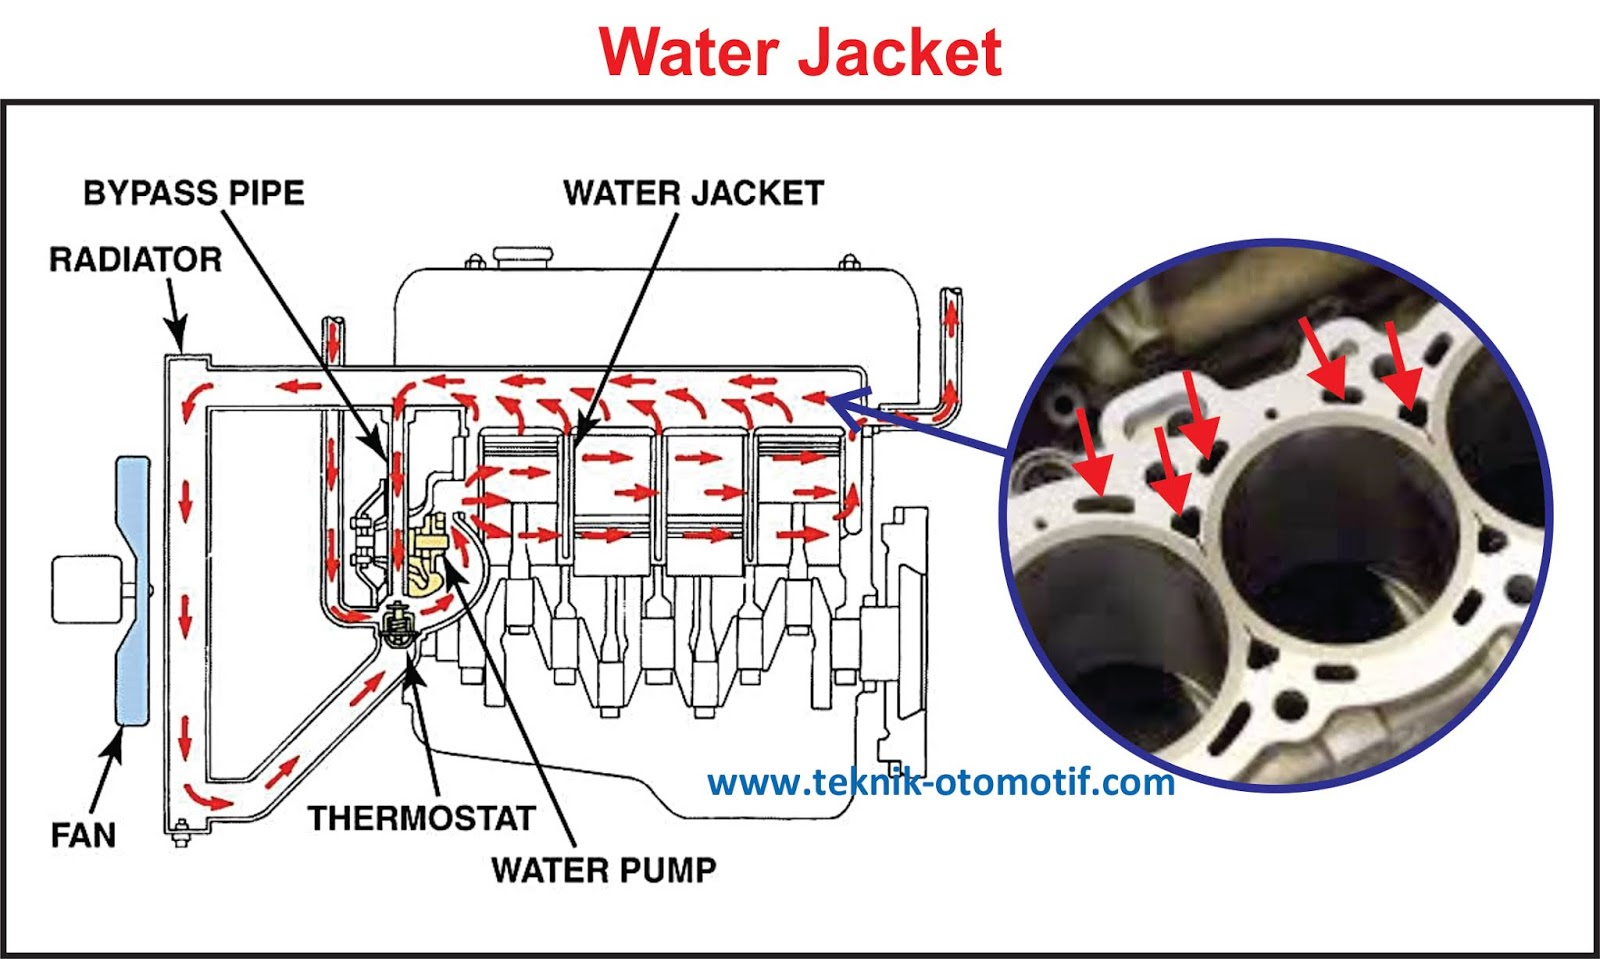 Engine Block Water Jacket Diagram - Ford Boss Plow Wiring Diagram for  Wiring Diagram SchematicsWiring Diagram Schematics